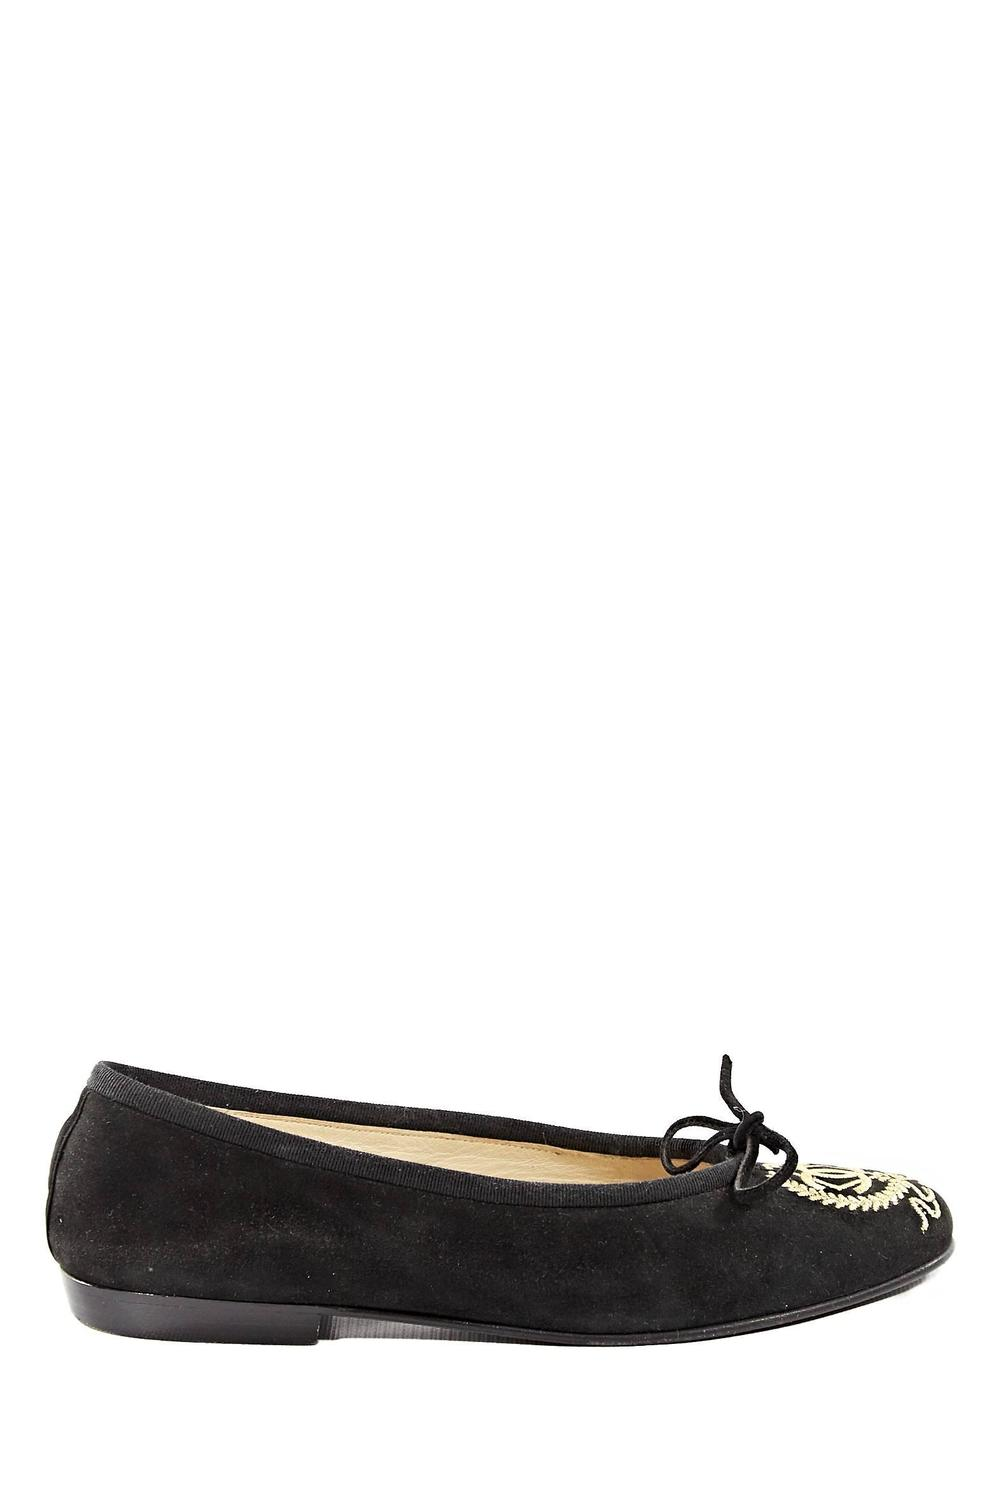 chanel black and gold suede emblem flat shoes at 1stdibs